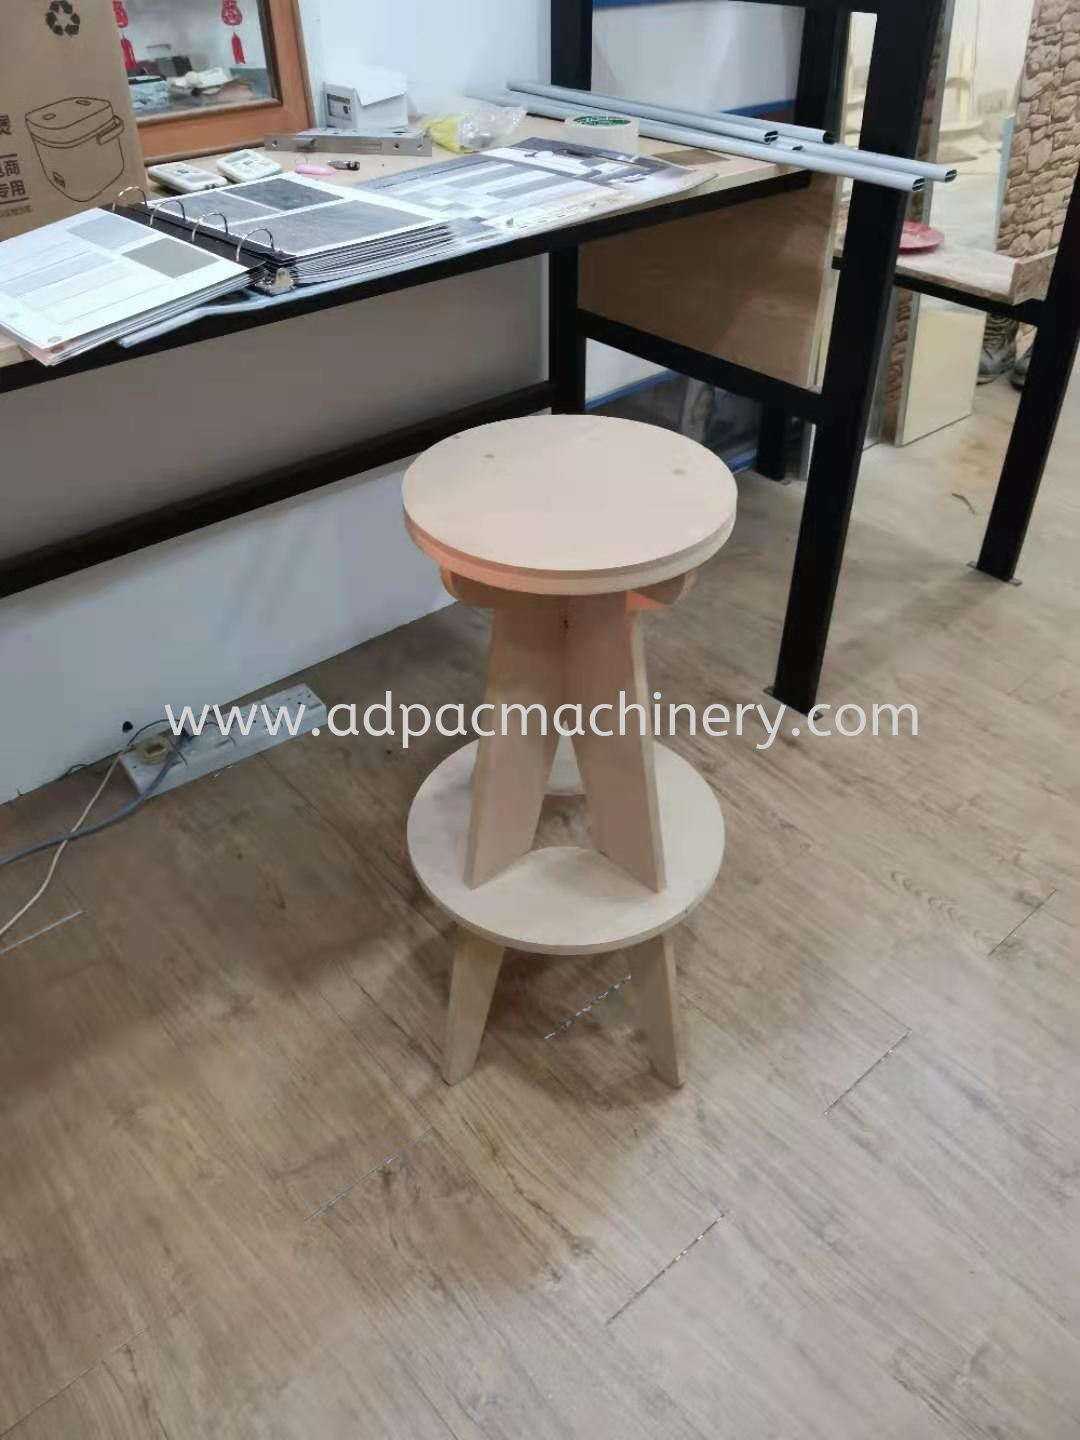 Nice Products Done By APM CNC Router